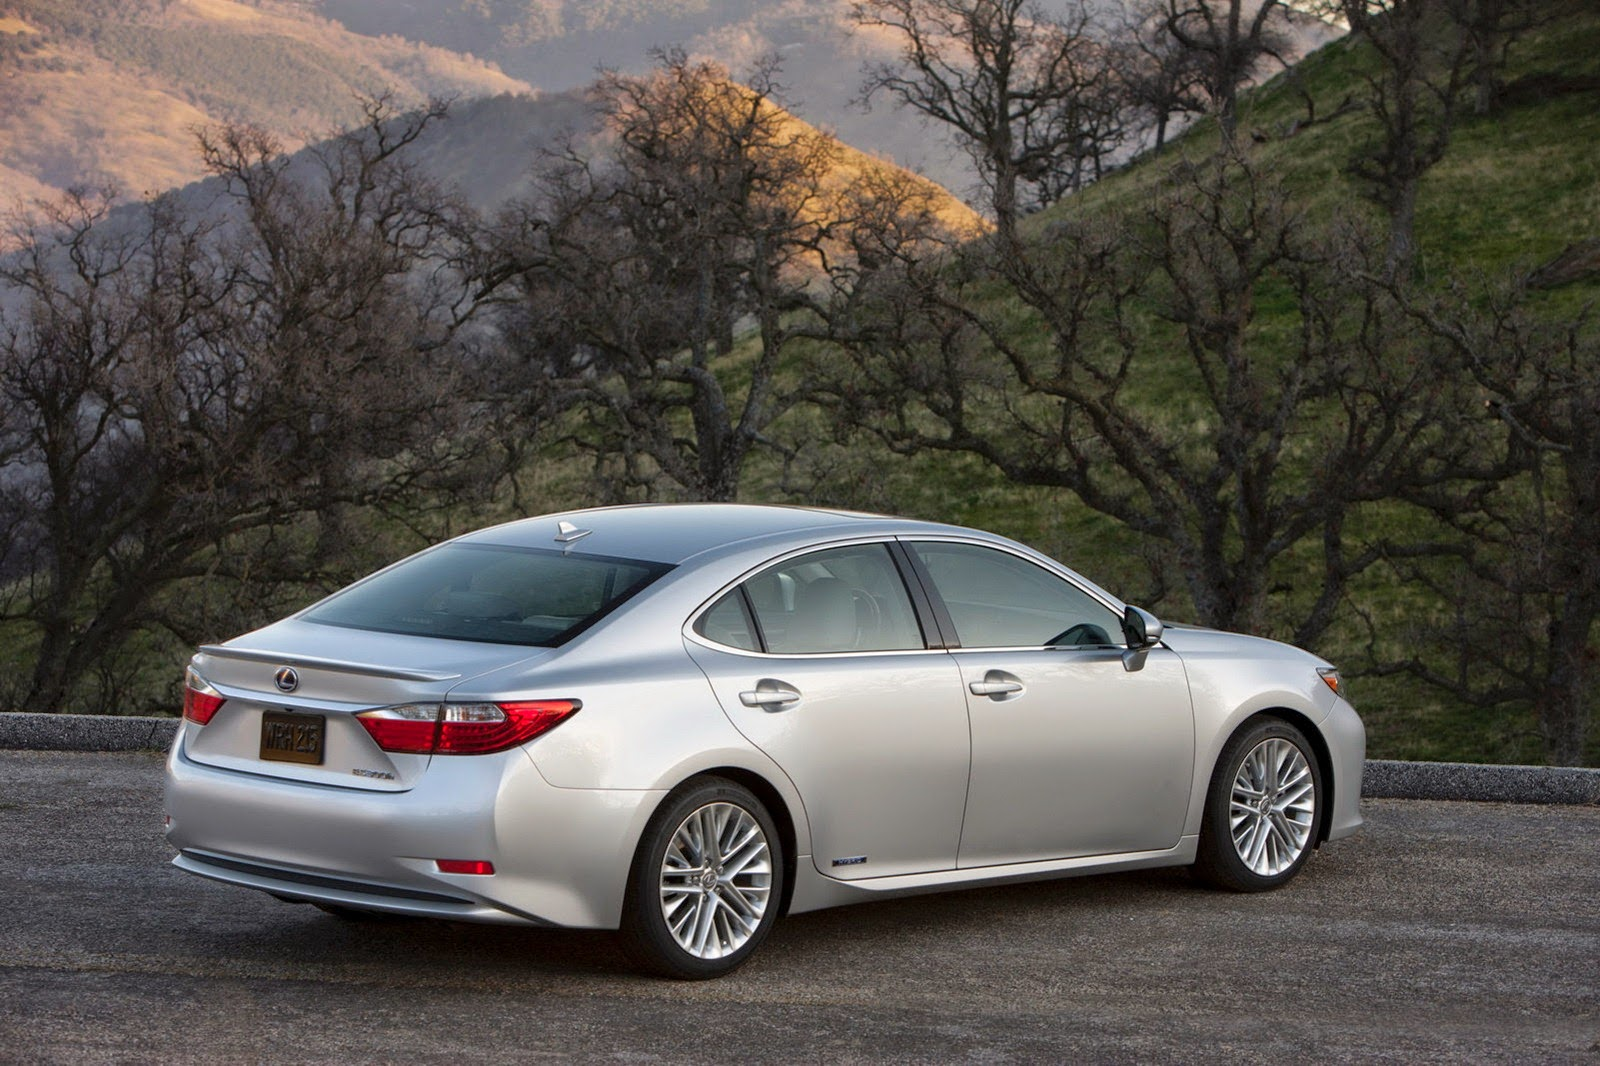 Lexus ES 350 Review and Price 2015